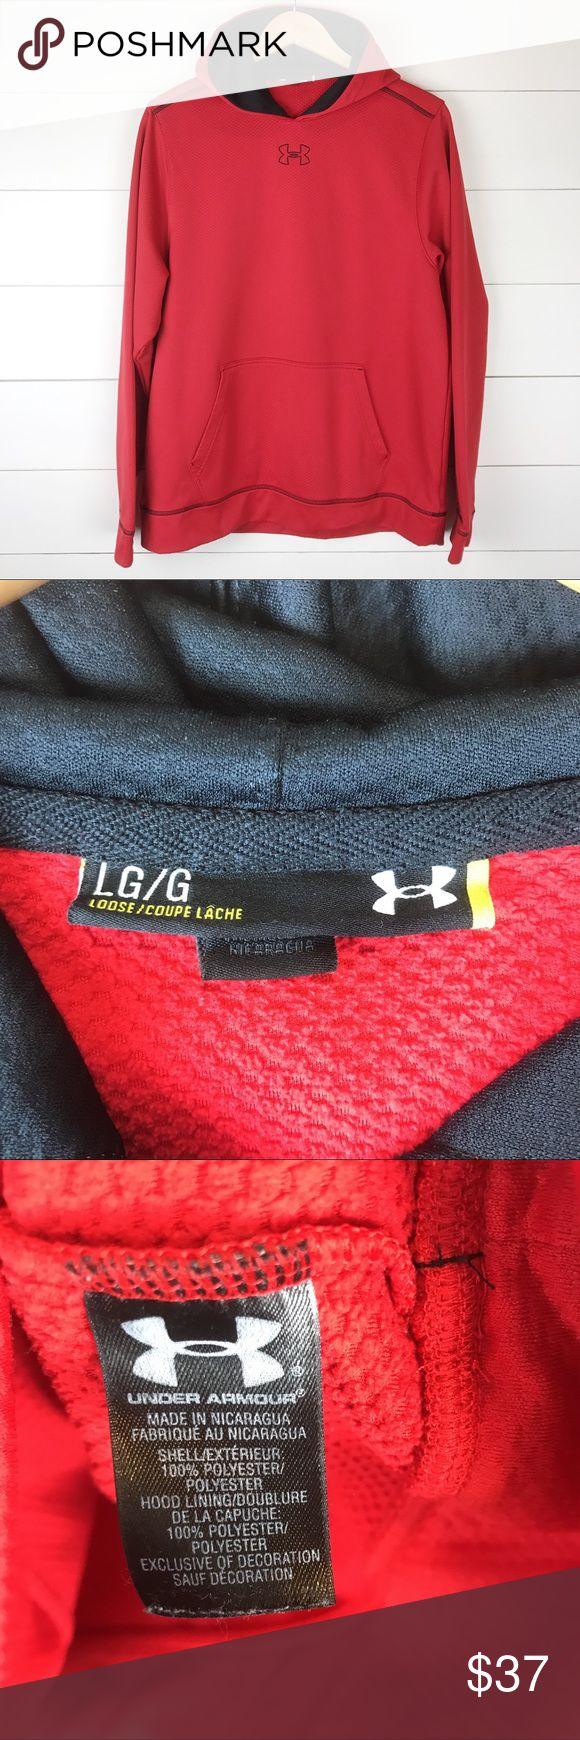 """Under Armour L Pullover Hoodie Logo Pocket Spell Awesome Under Armour pullover hoodie.  Great logo on front and spellout on hood.  Bright red and black in size large. Missing string in hood.  MEASUREMENTS  Underarm to Underarm 23""""  Underarm to End of Sleeve 21 1/2"""" Length 28""""   A2 Under Armour Shirts Sweatshirts & Hoodies"""